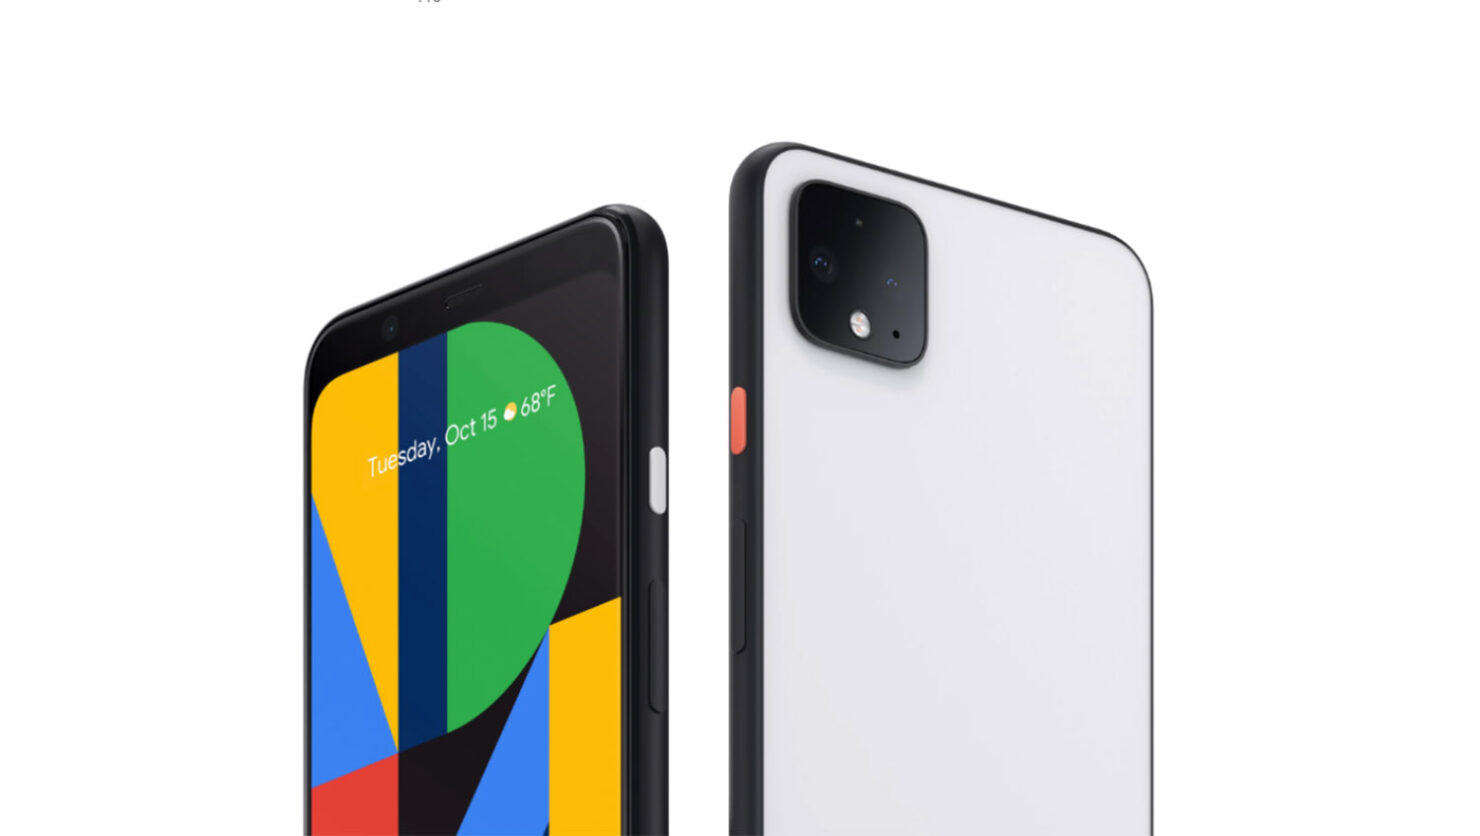 Pixel 4a No Longer Available? No Worries, Get the Pixel 4 Unlocked for $549 in Just Black